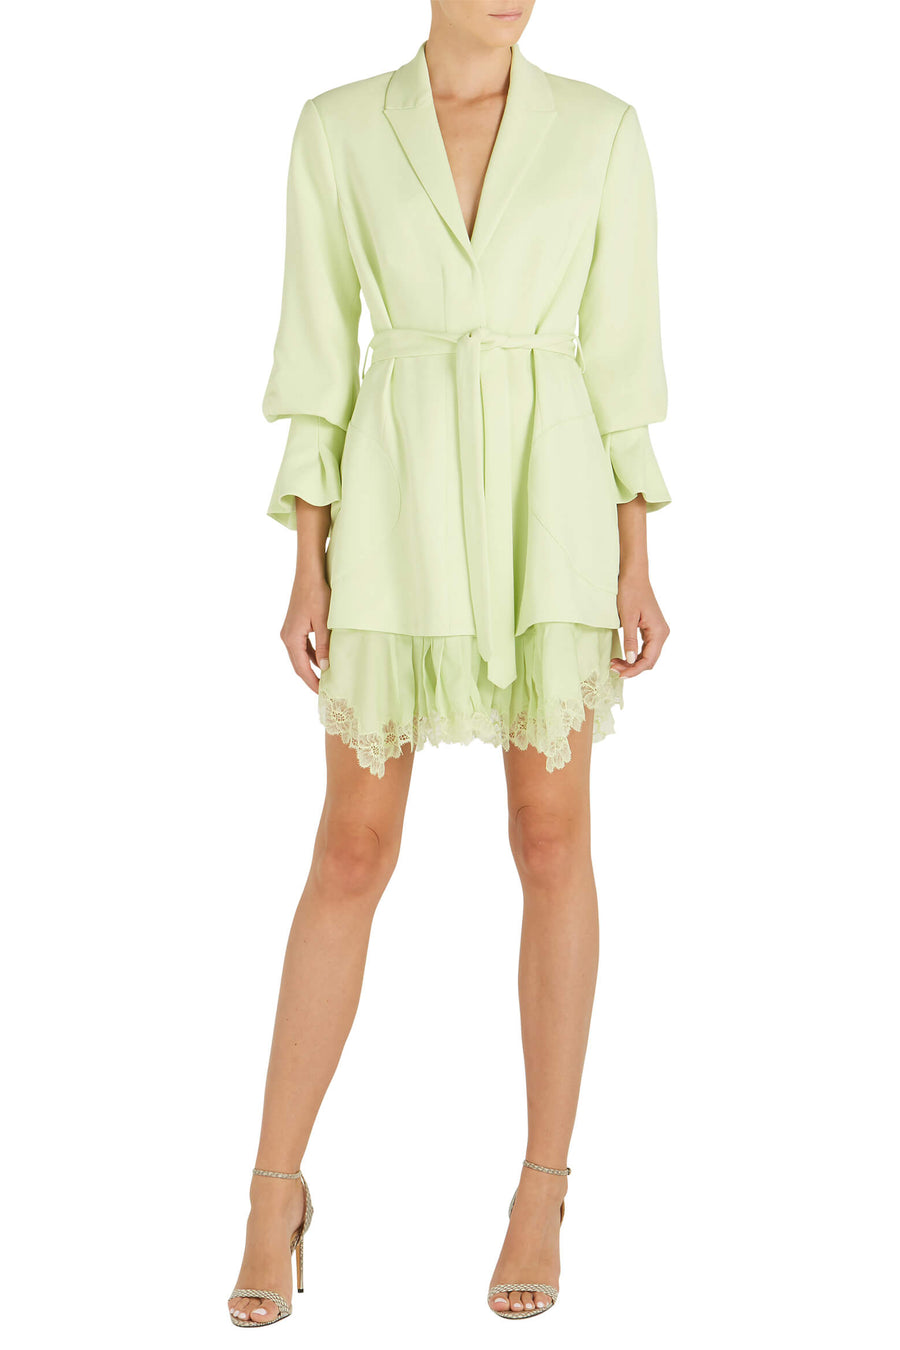 Jonathan Simkhai Victoria Crepe Dress in Pear at The New Trend